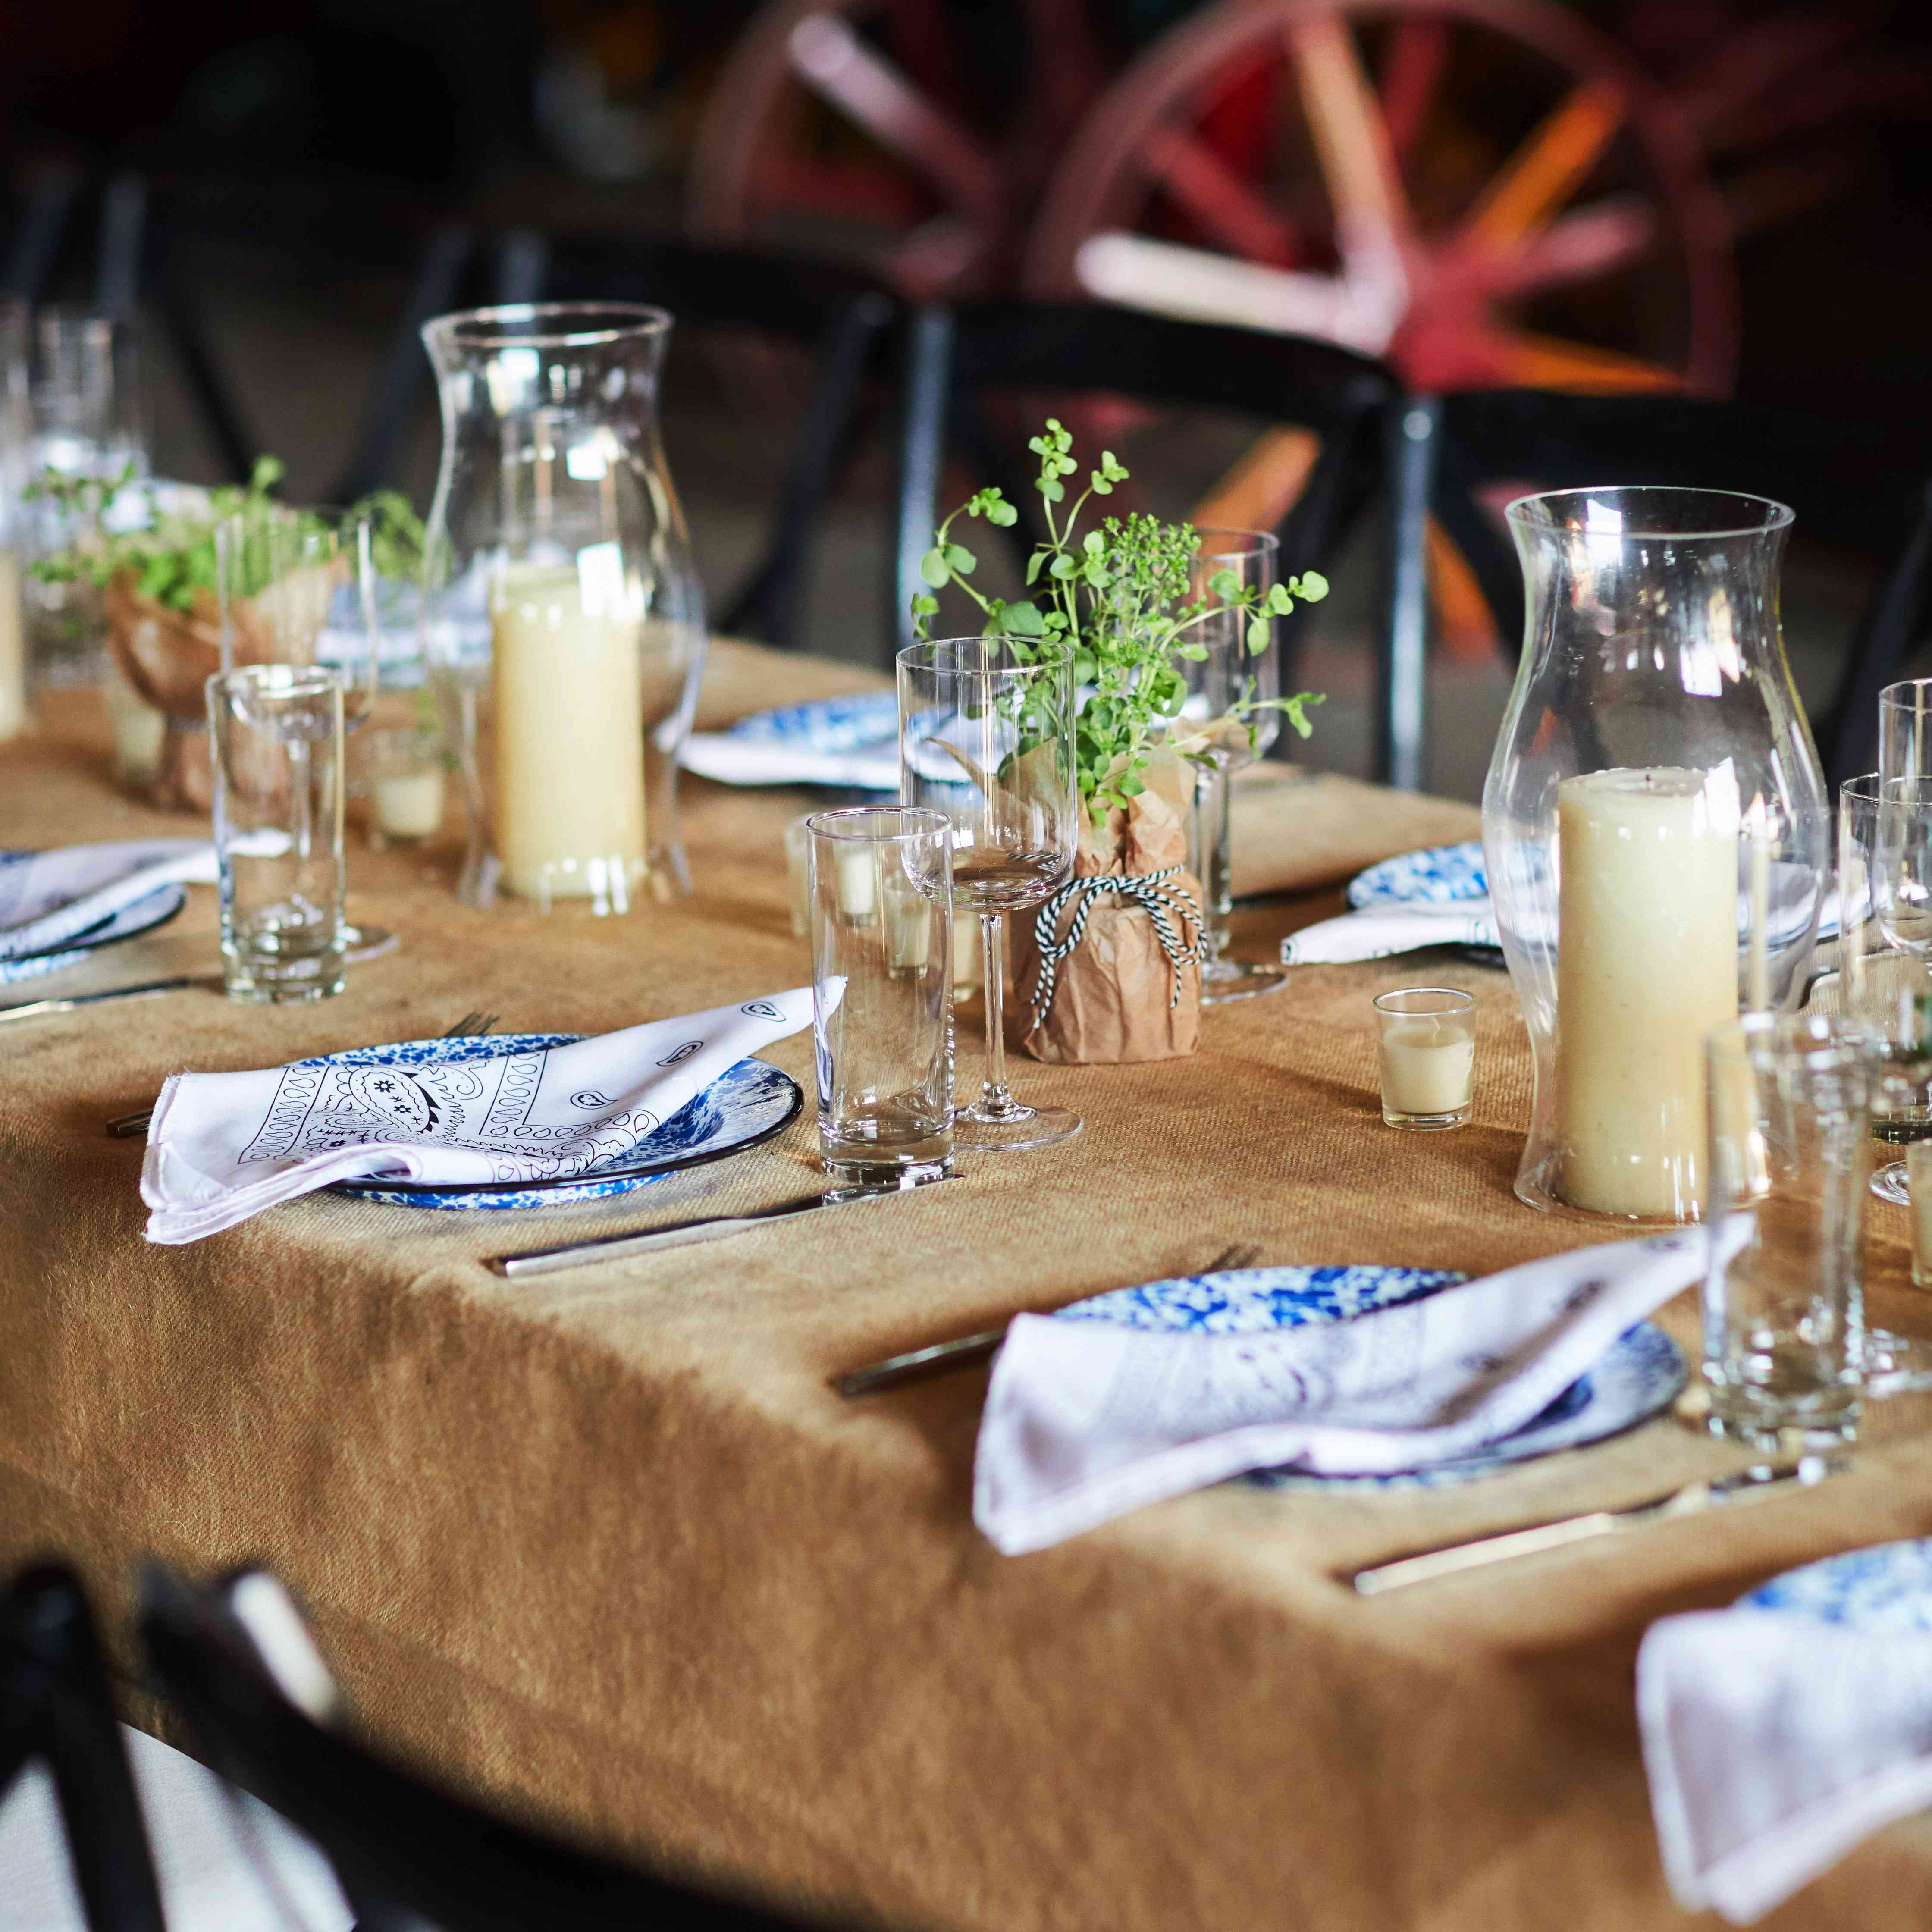 Rustic, country tablescape